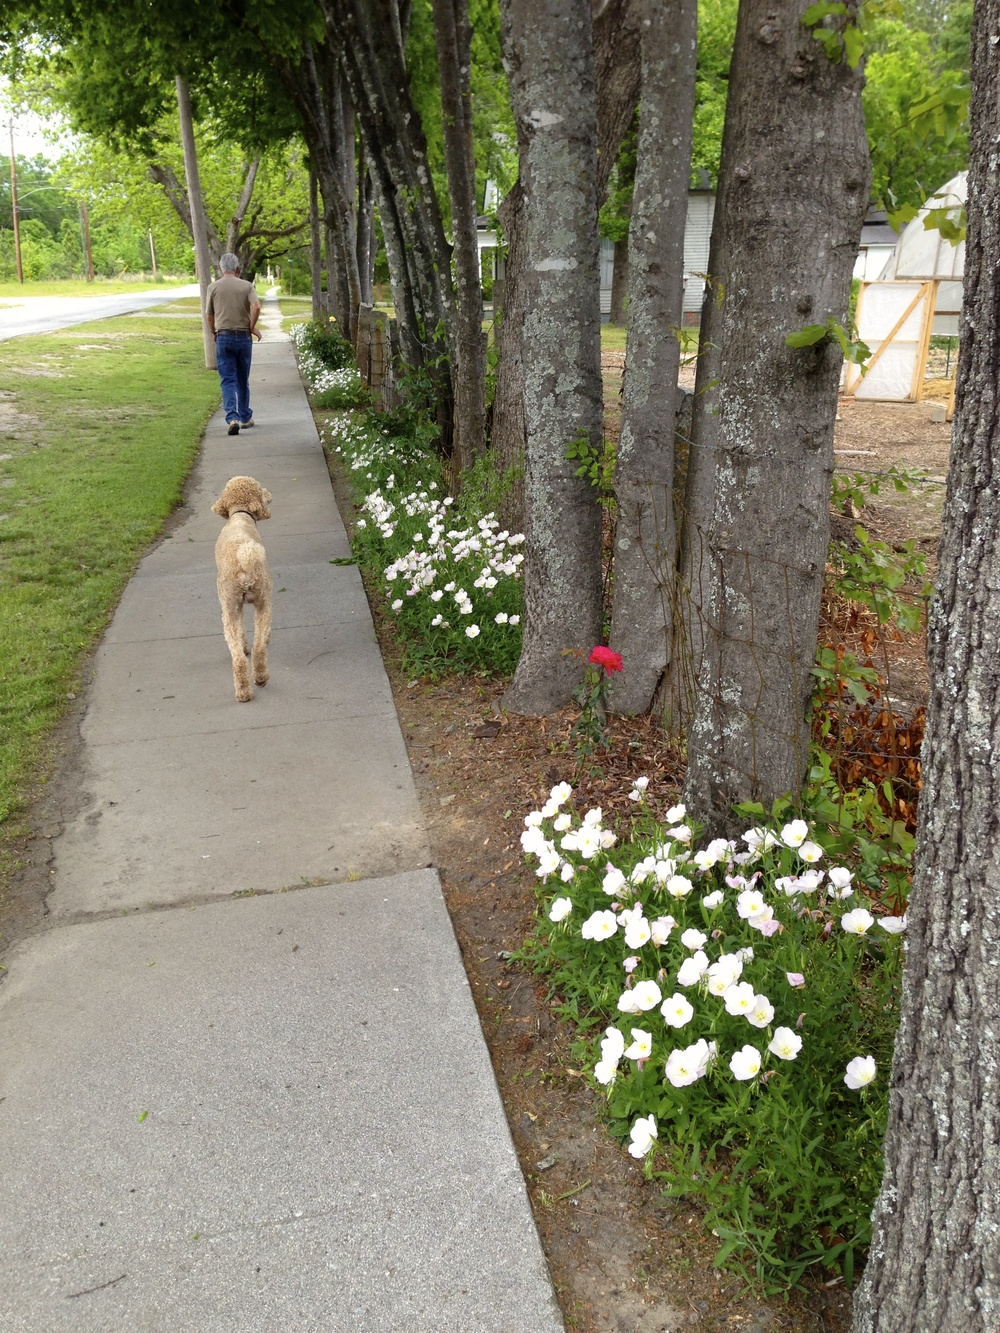 Robert and Rives walk along the outside fence line which is planted with evening primroses.